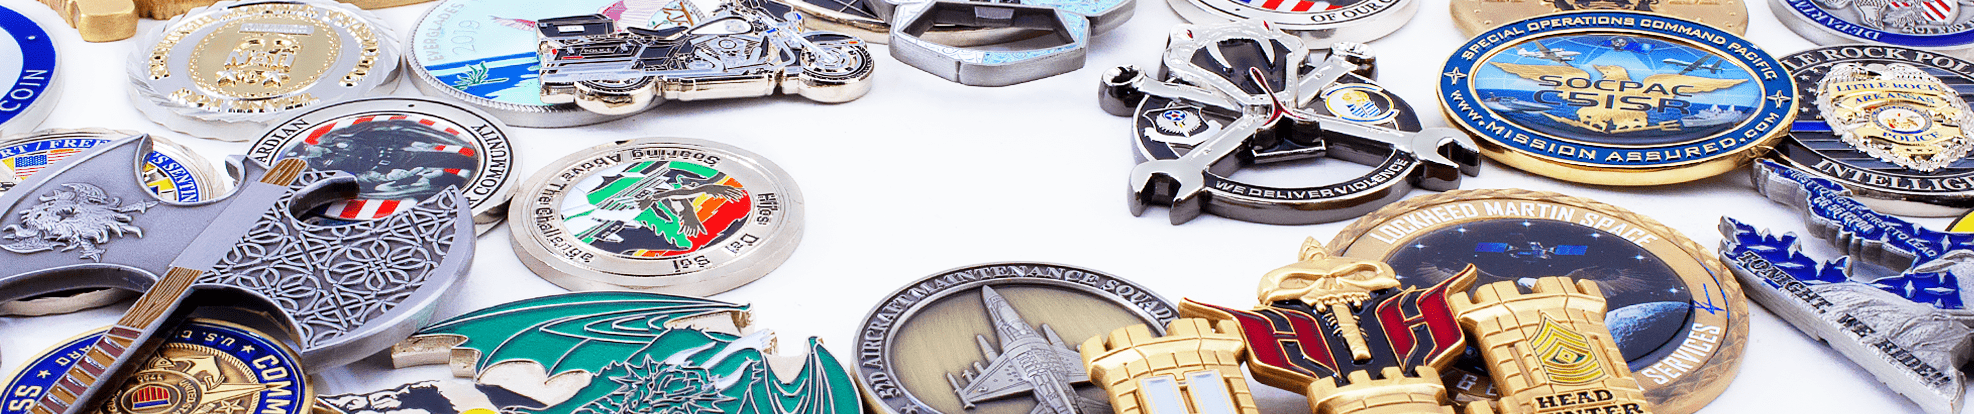 Challenge Coins Plus Index header